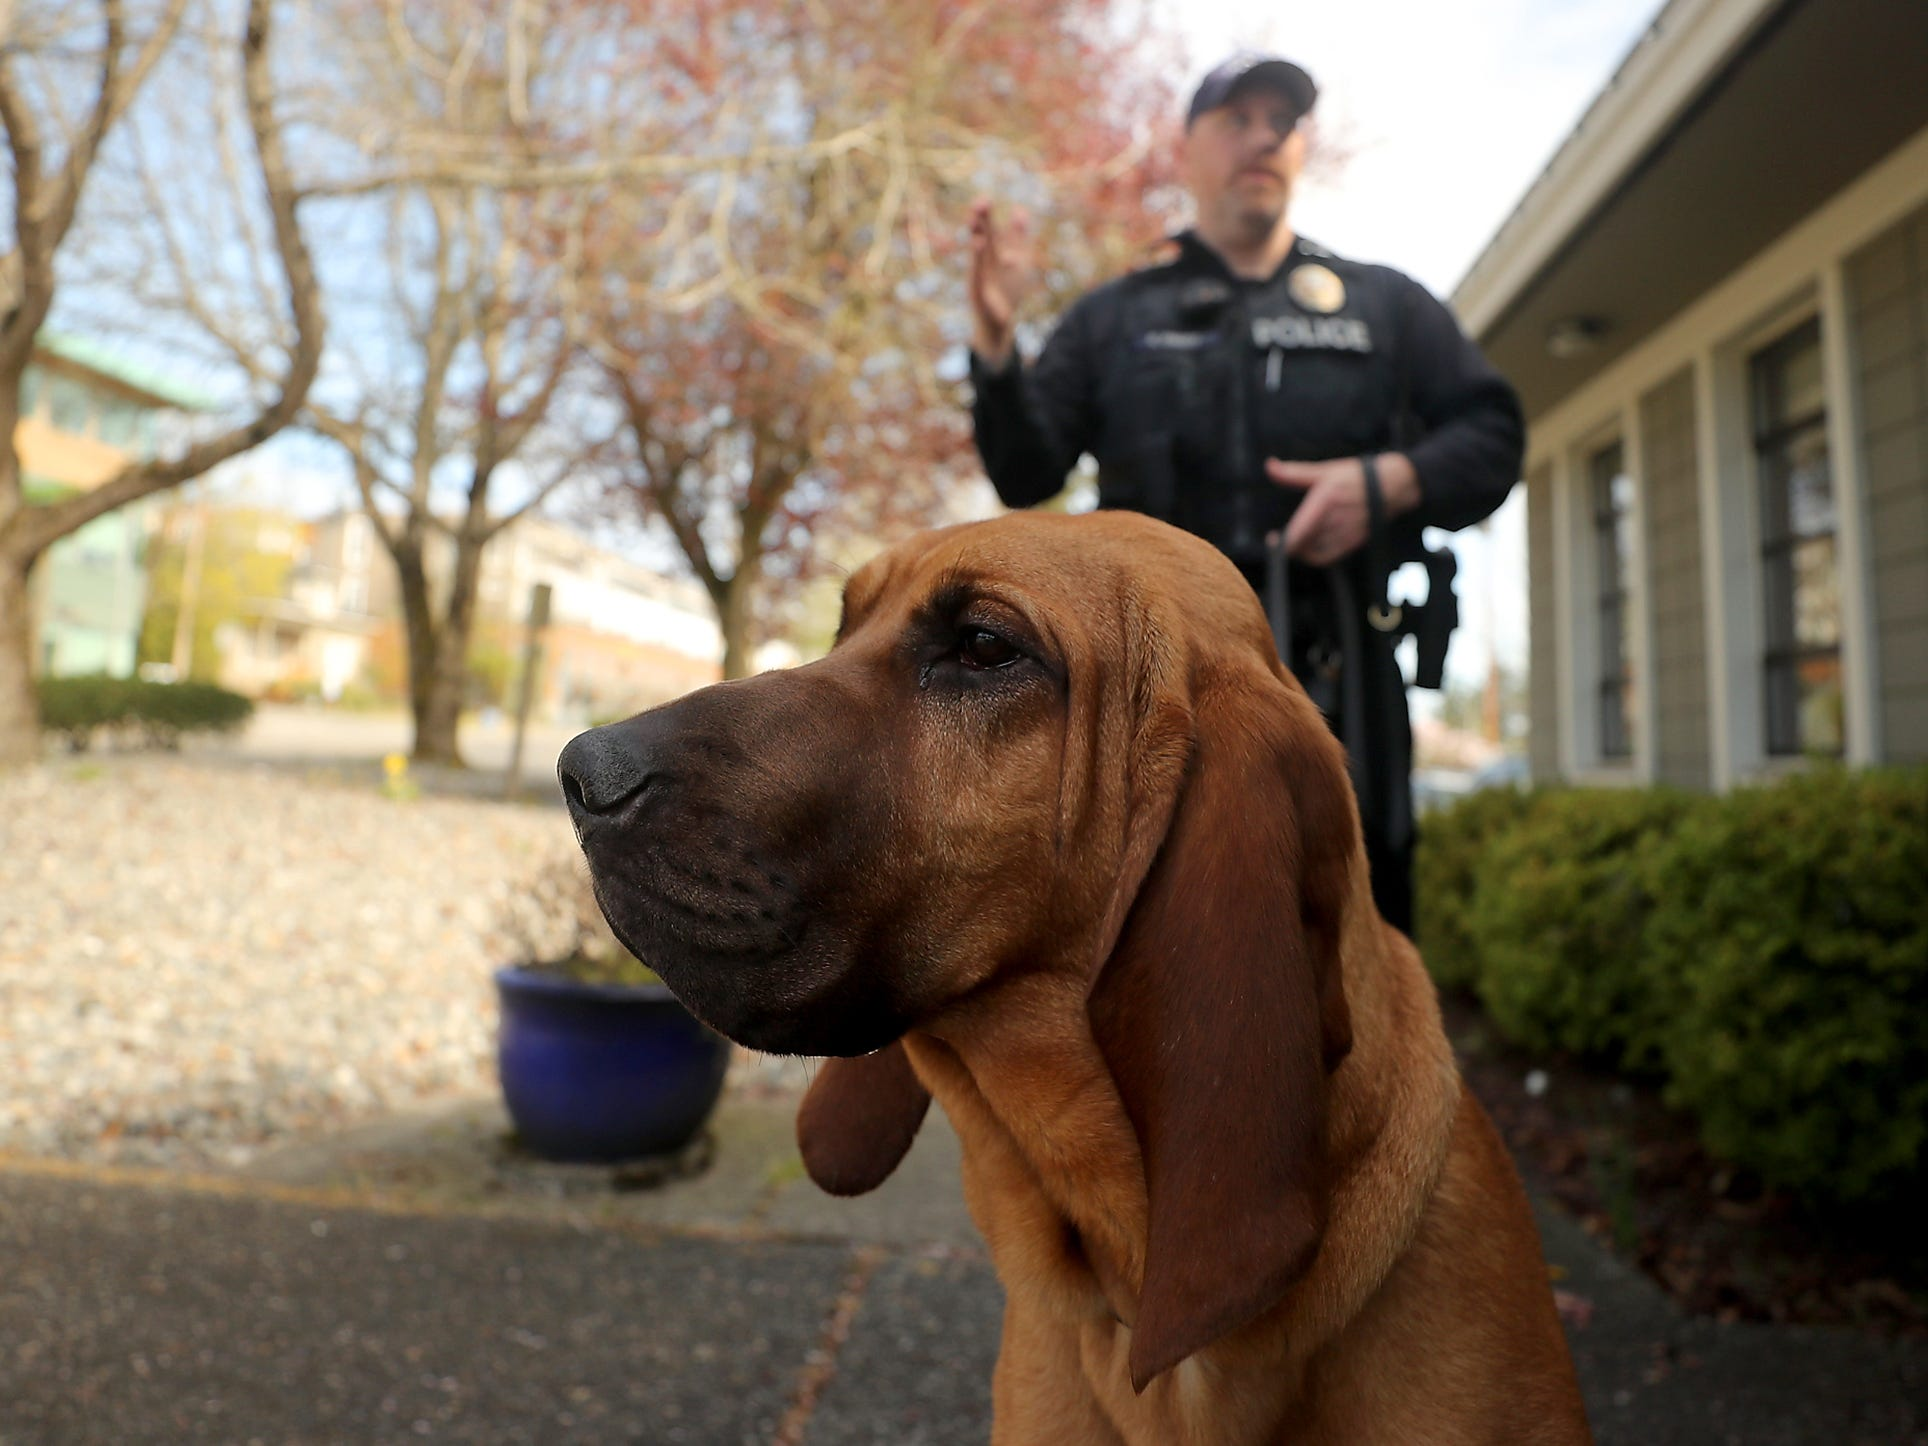 Bainbridge Island Police Department K9 Whitney, an 11-month-old bloodhound, watches cars and pedestrians as she stands outside of the police station with Officer Kurt Enget on Thursday, April 4, 2019.